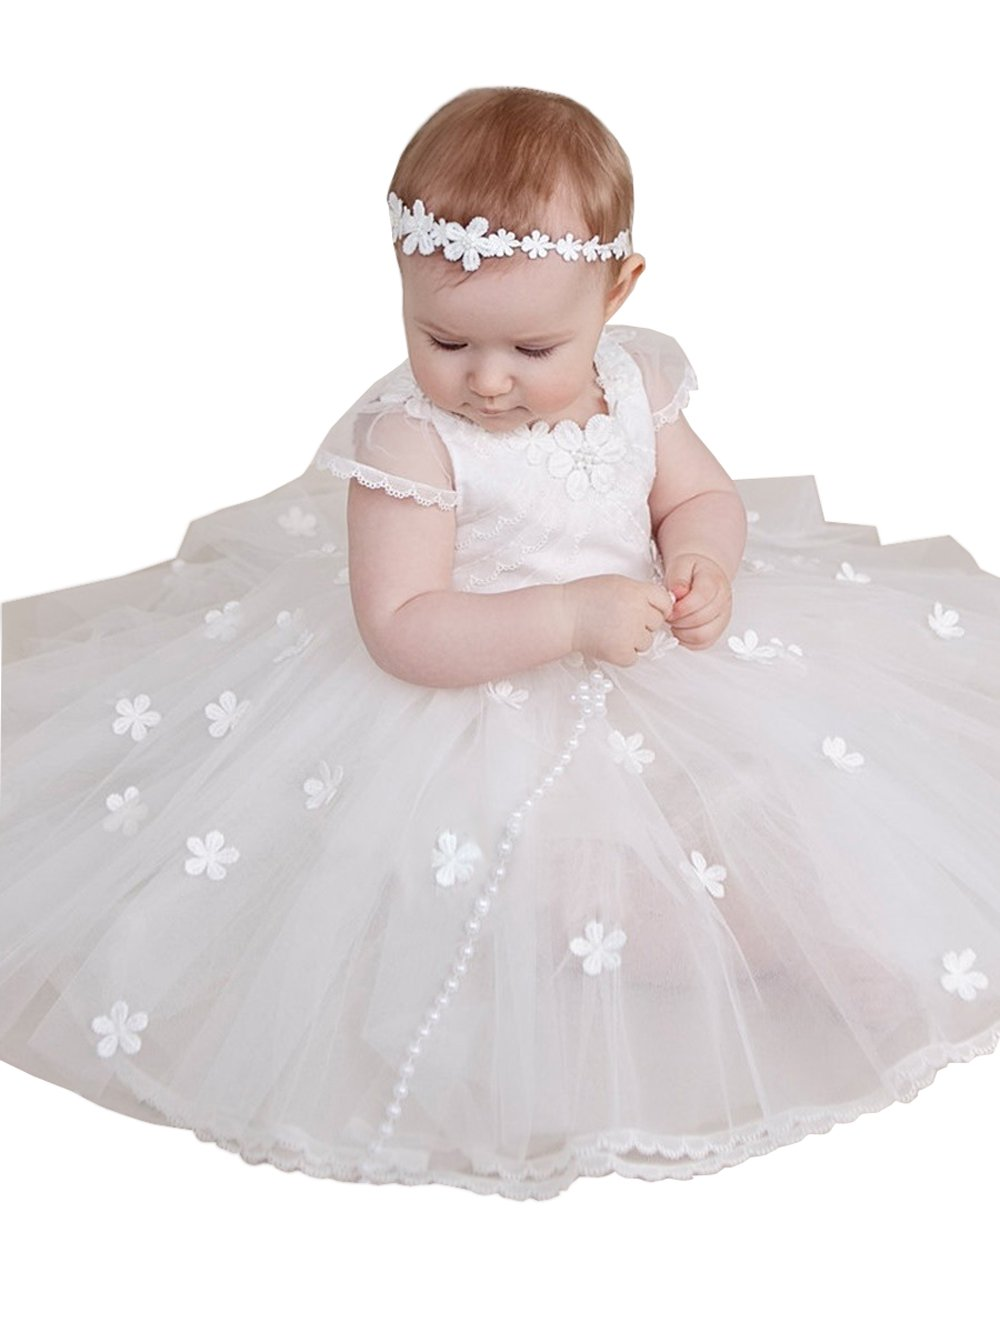 kelaixiang Baby Girls Dress Christening Baptism Party Formal Dress